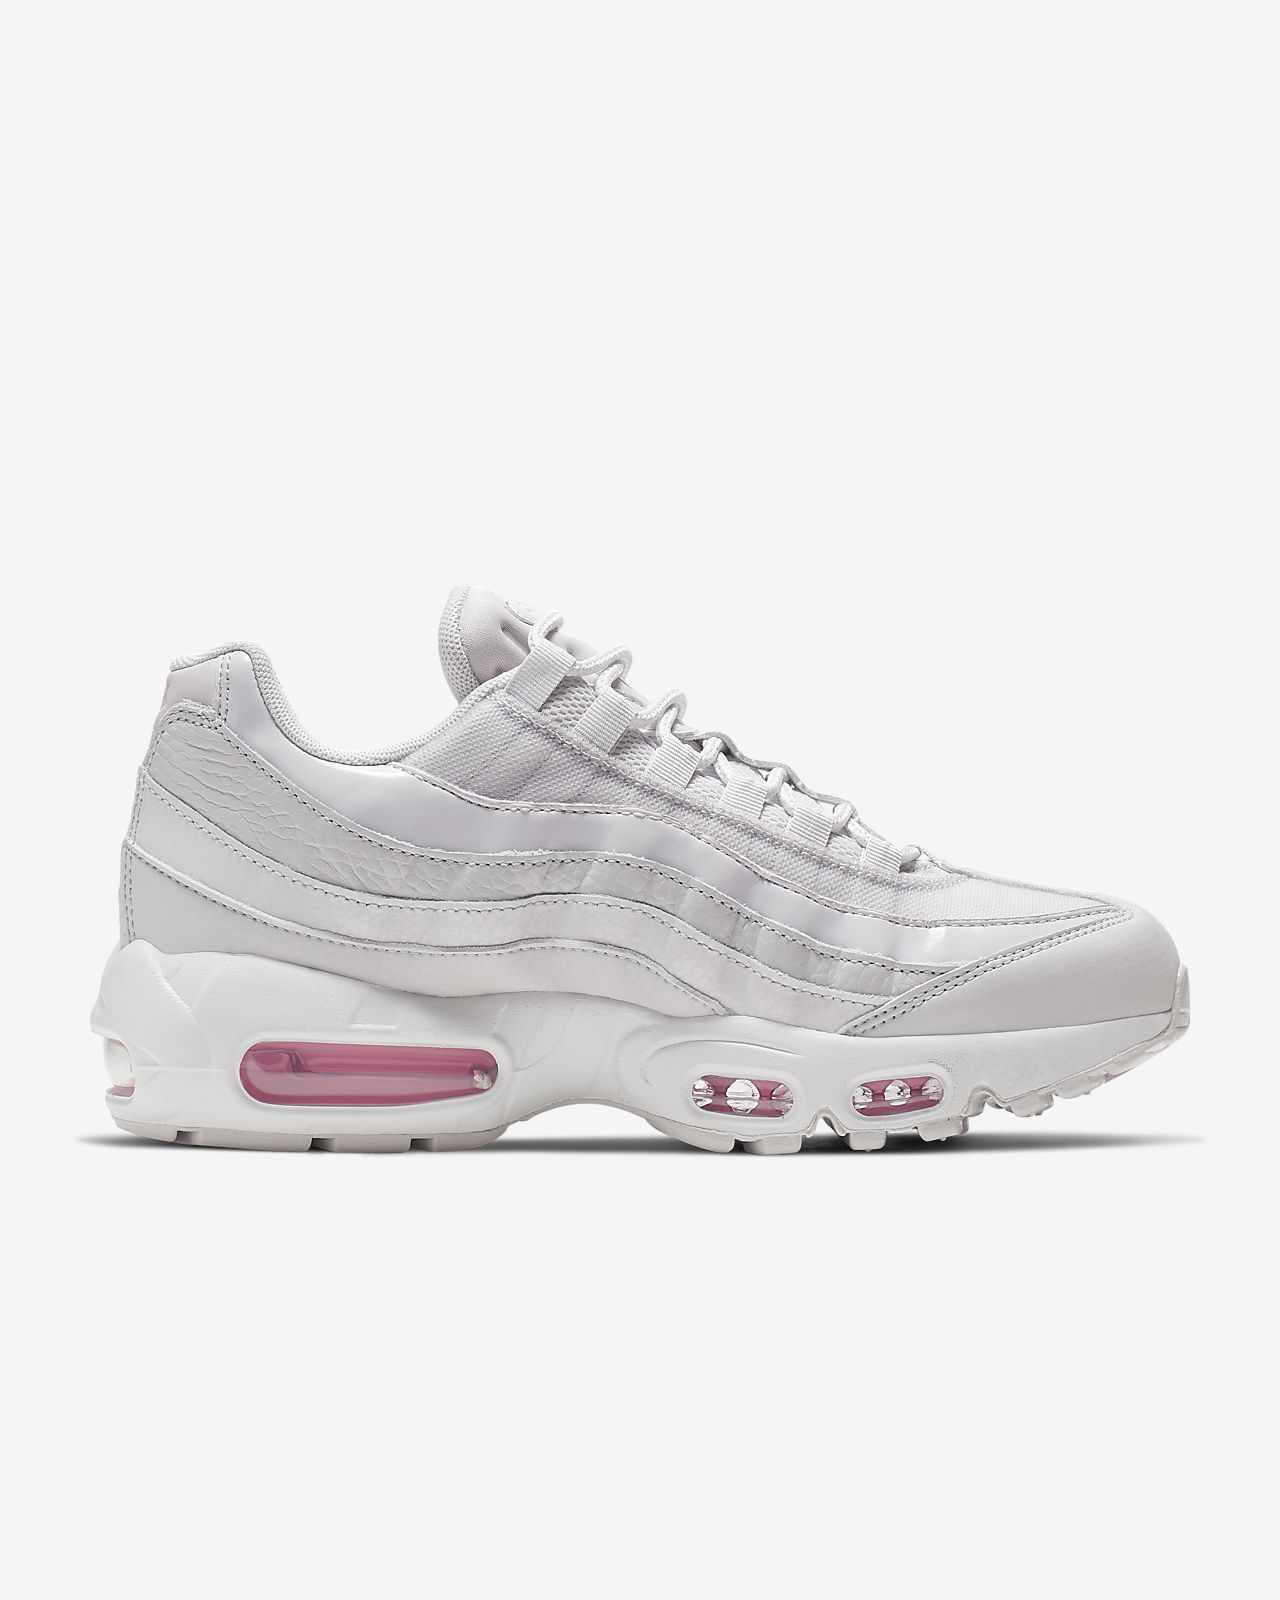 Max 95 Nike Pour Chaussure Femme Se Air y7gYb6f